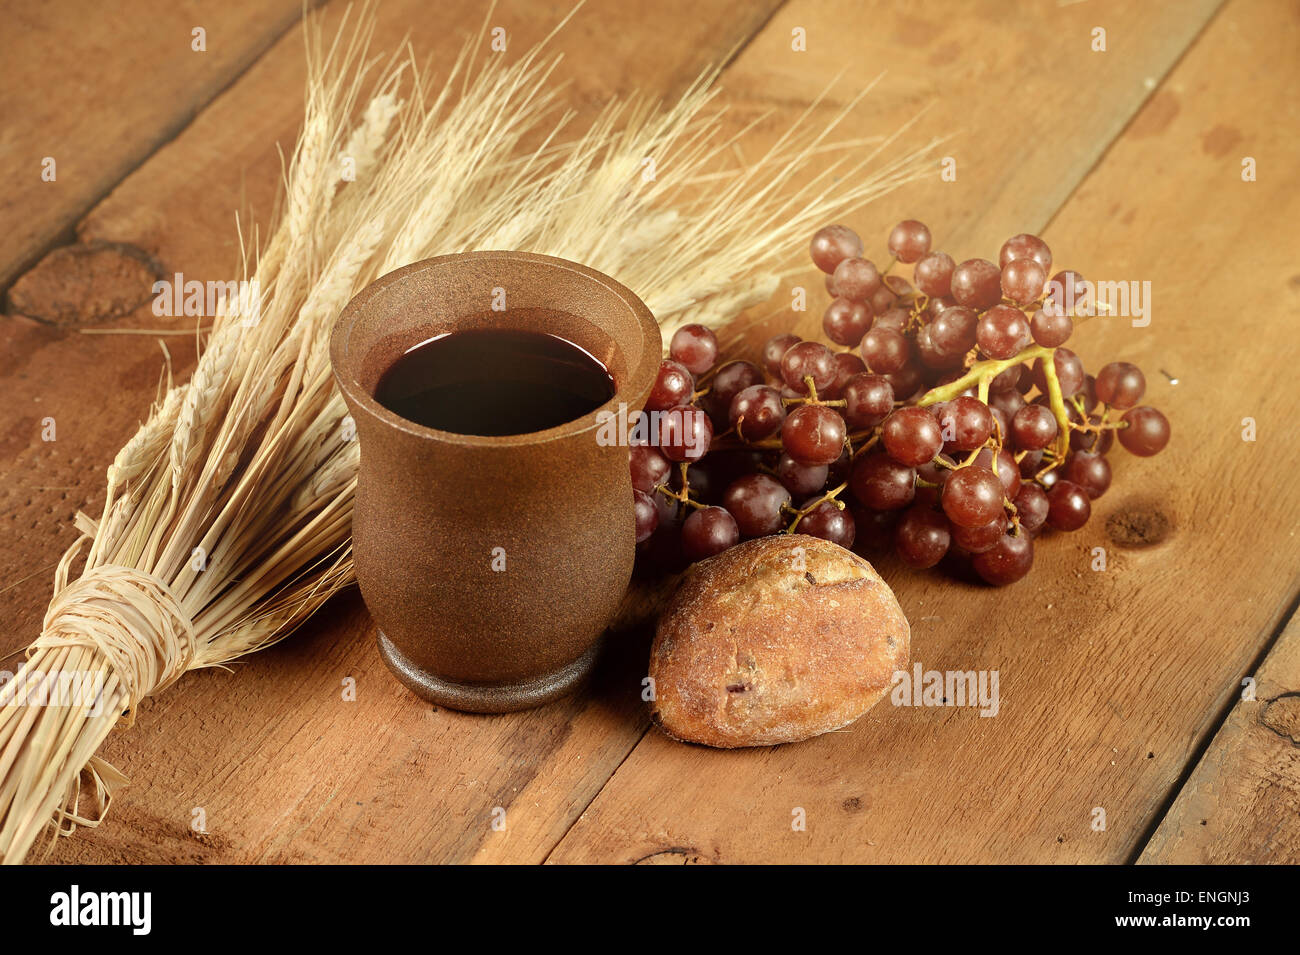 communion elements with wine and bread on wooden table stock photo